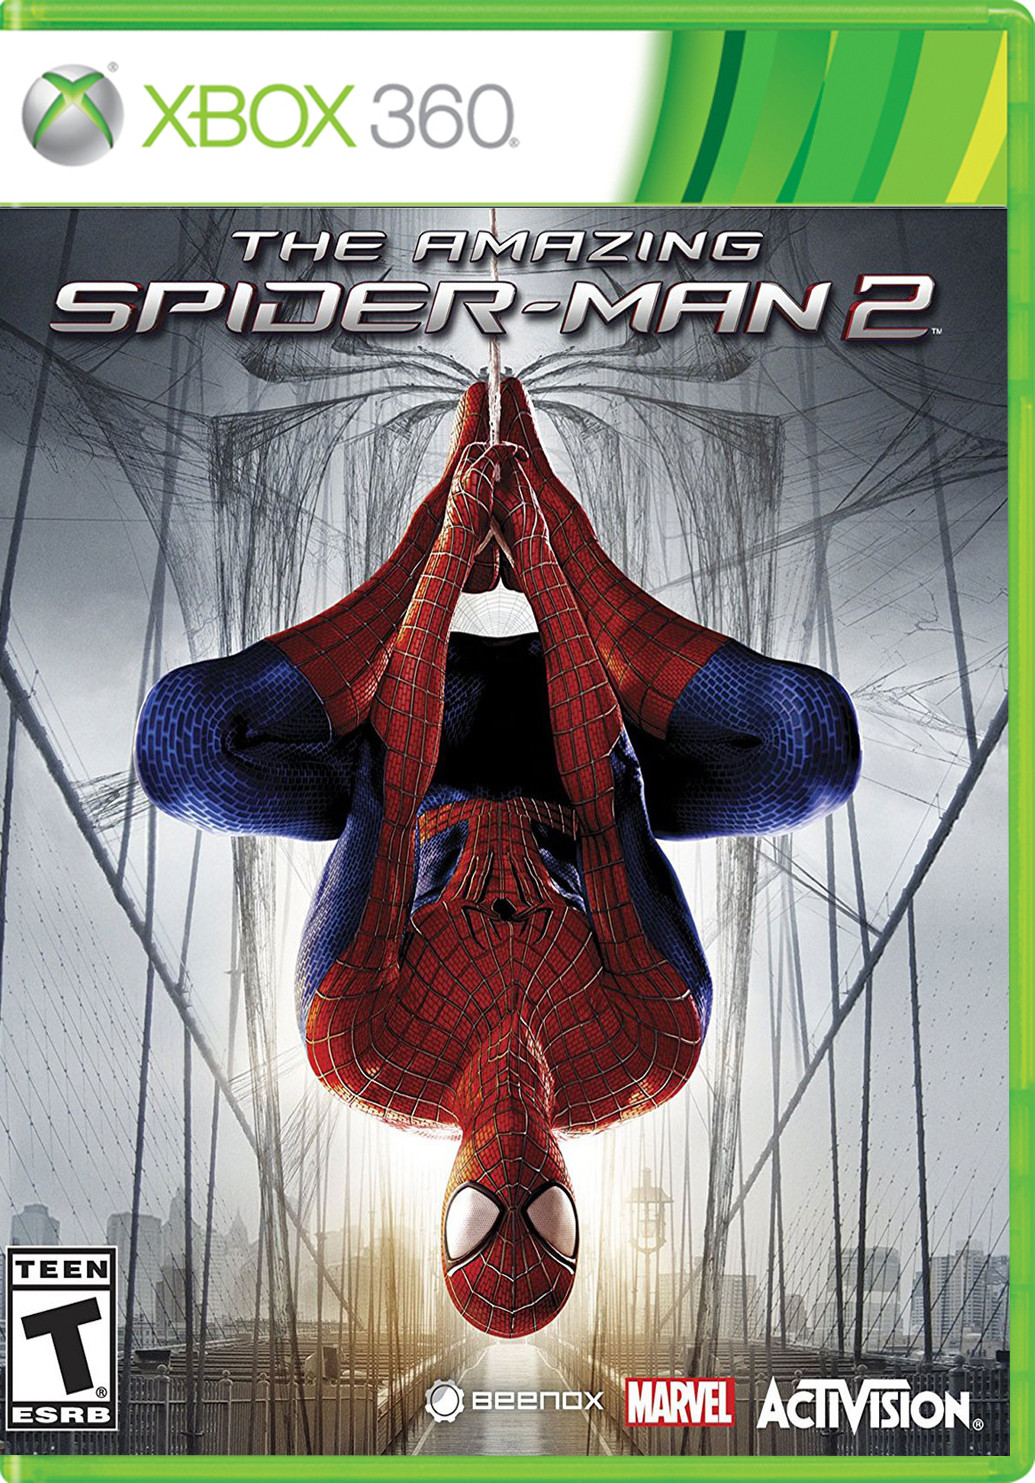 360 Para Spiderman Amazing The 2 Gameplanet OXilTZPuwk